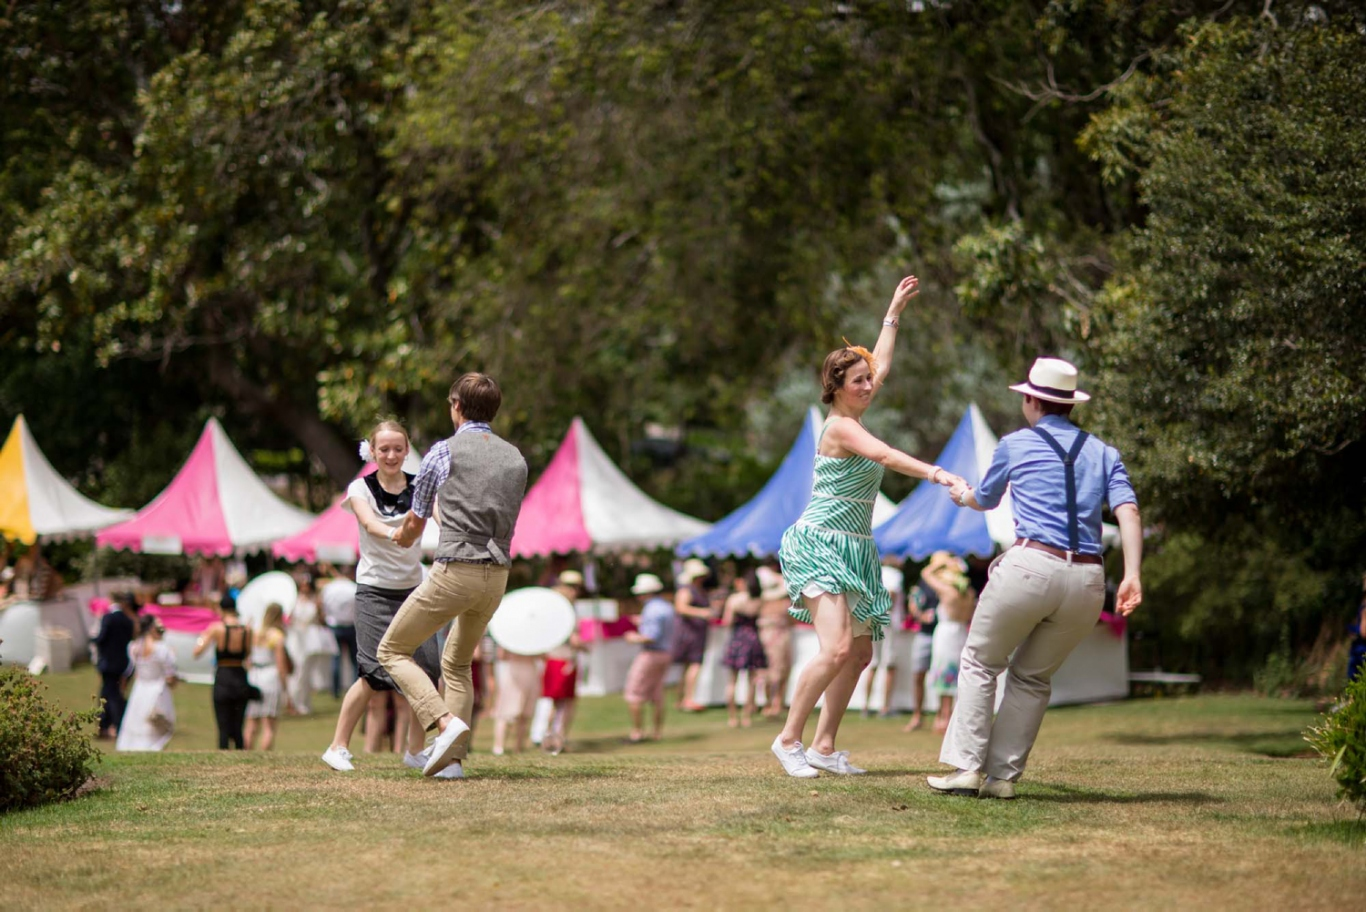 Couples wearing vintage clothing dancing on the lawn with colourful marquee and crowd in background.